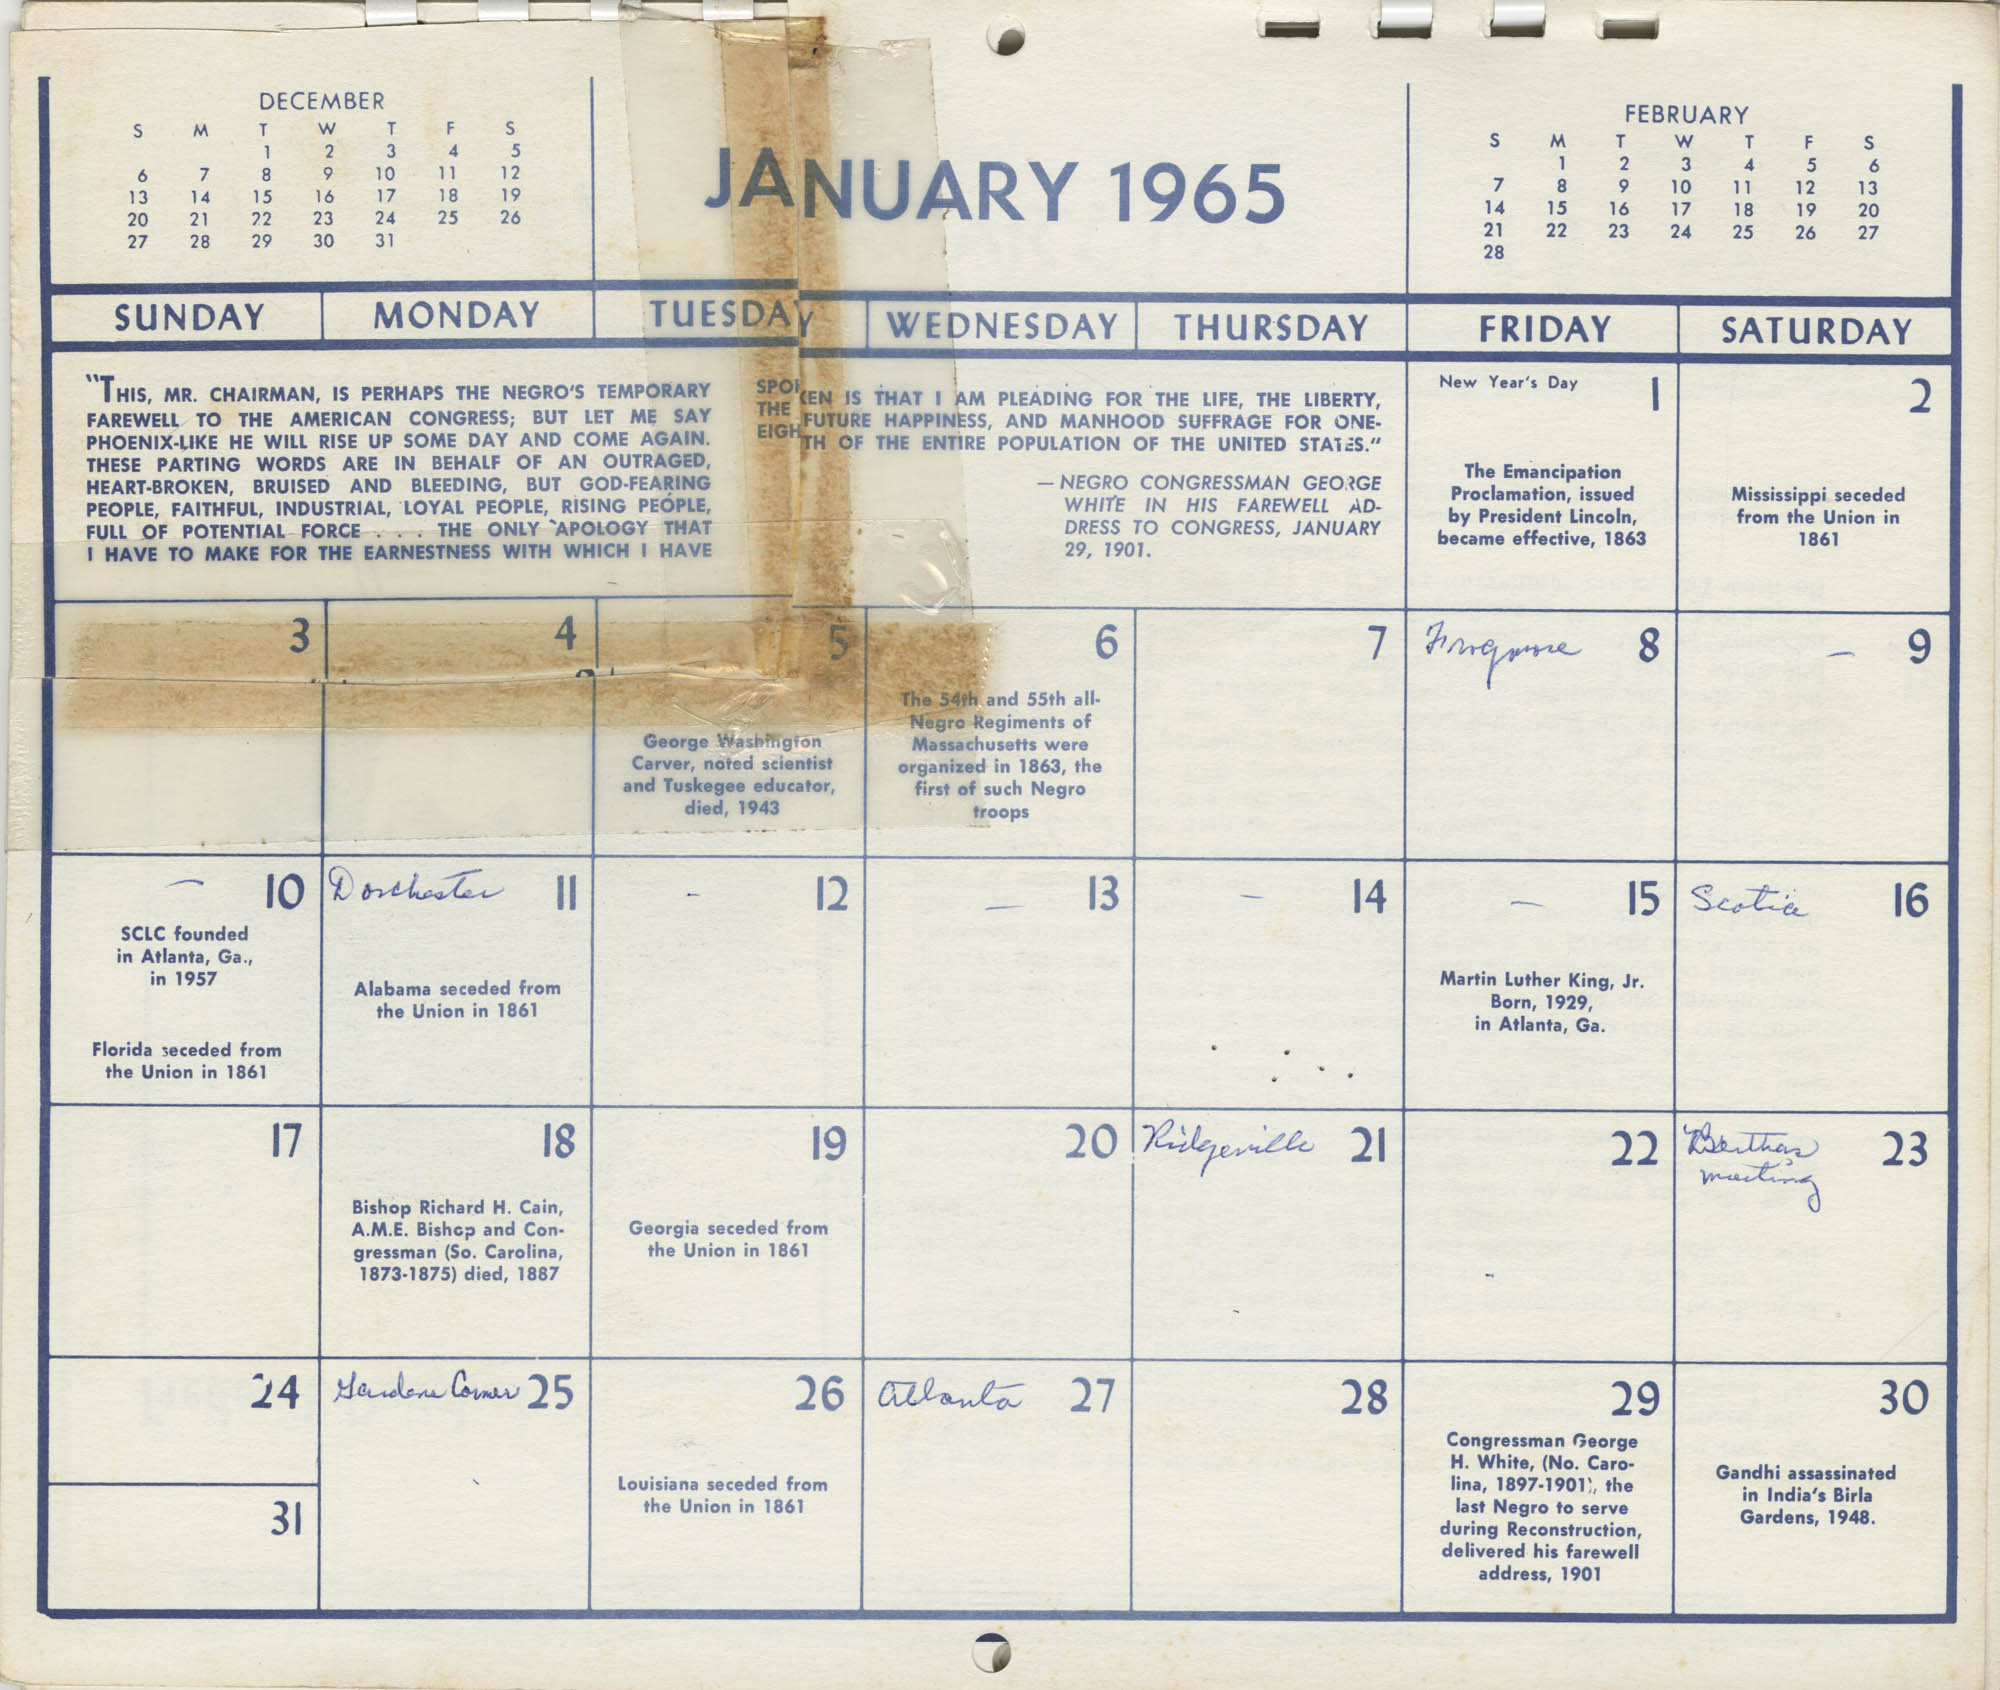 Southern Christian Leadership Conference Newsletter Calendar, January 1965, Bottom